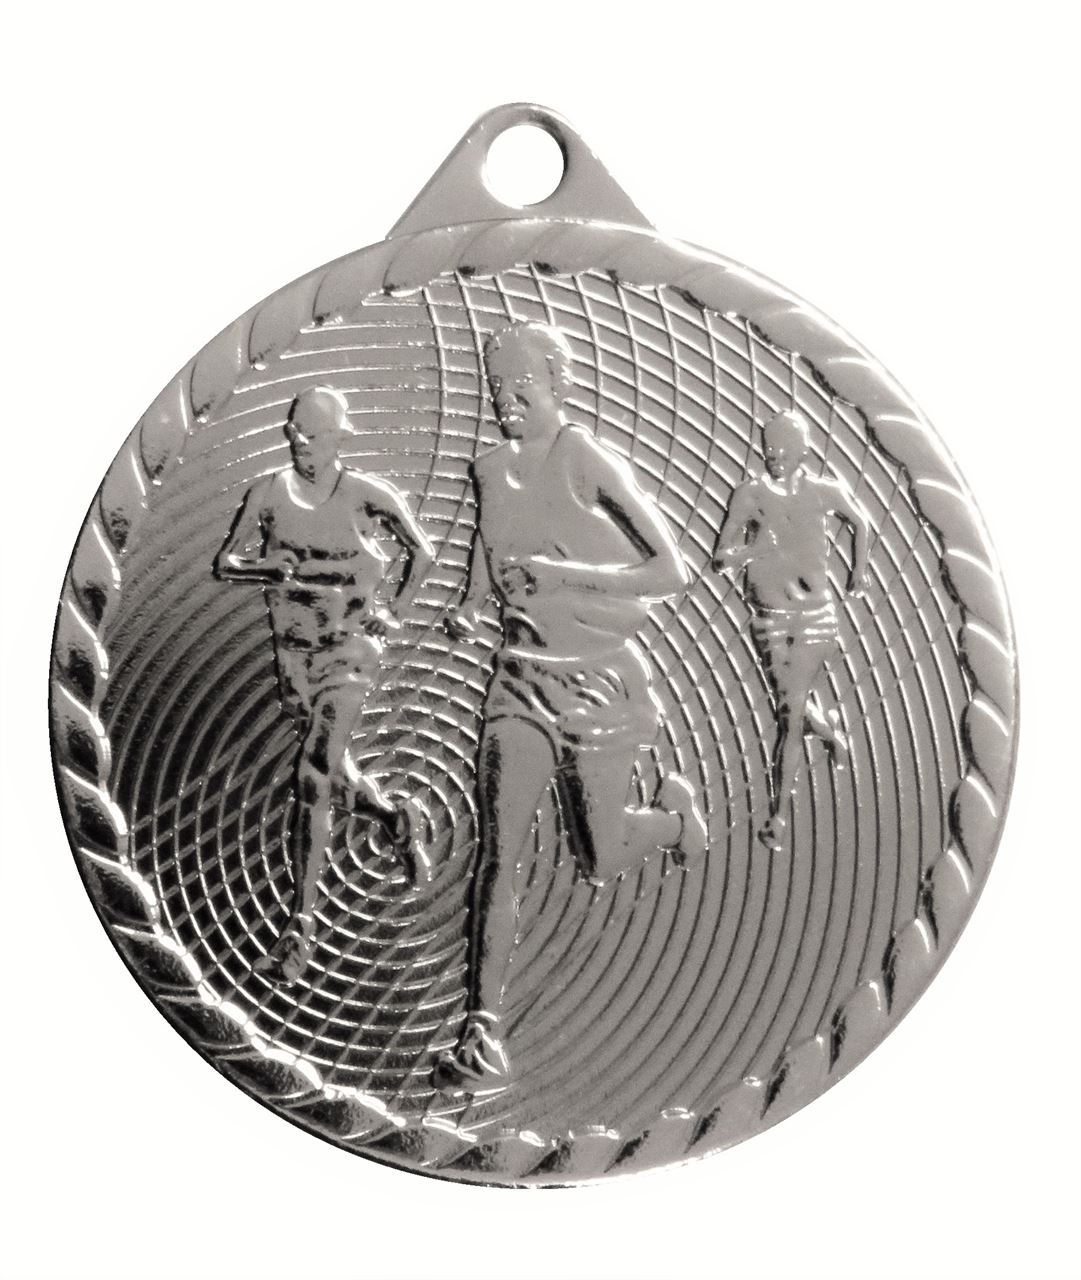 Silver Isoline Economy Running Medal (size: 50mm) - 63852